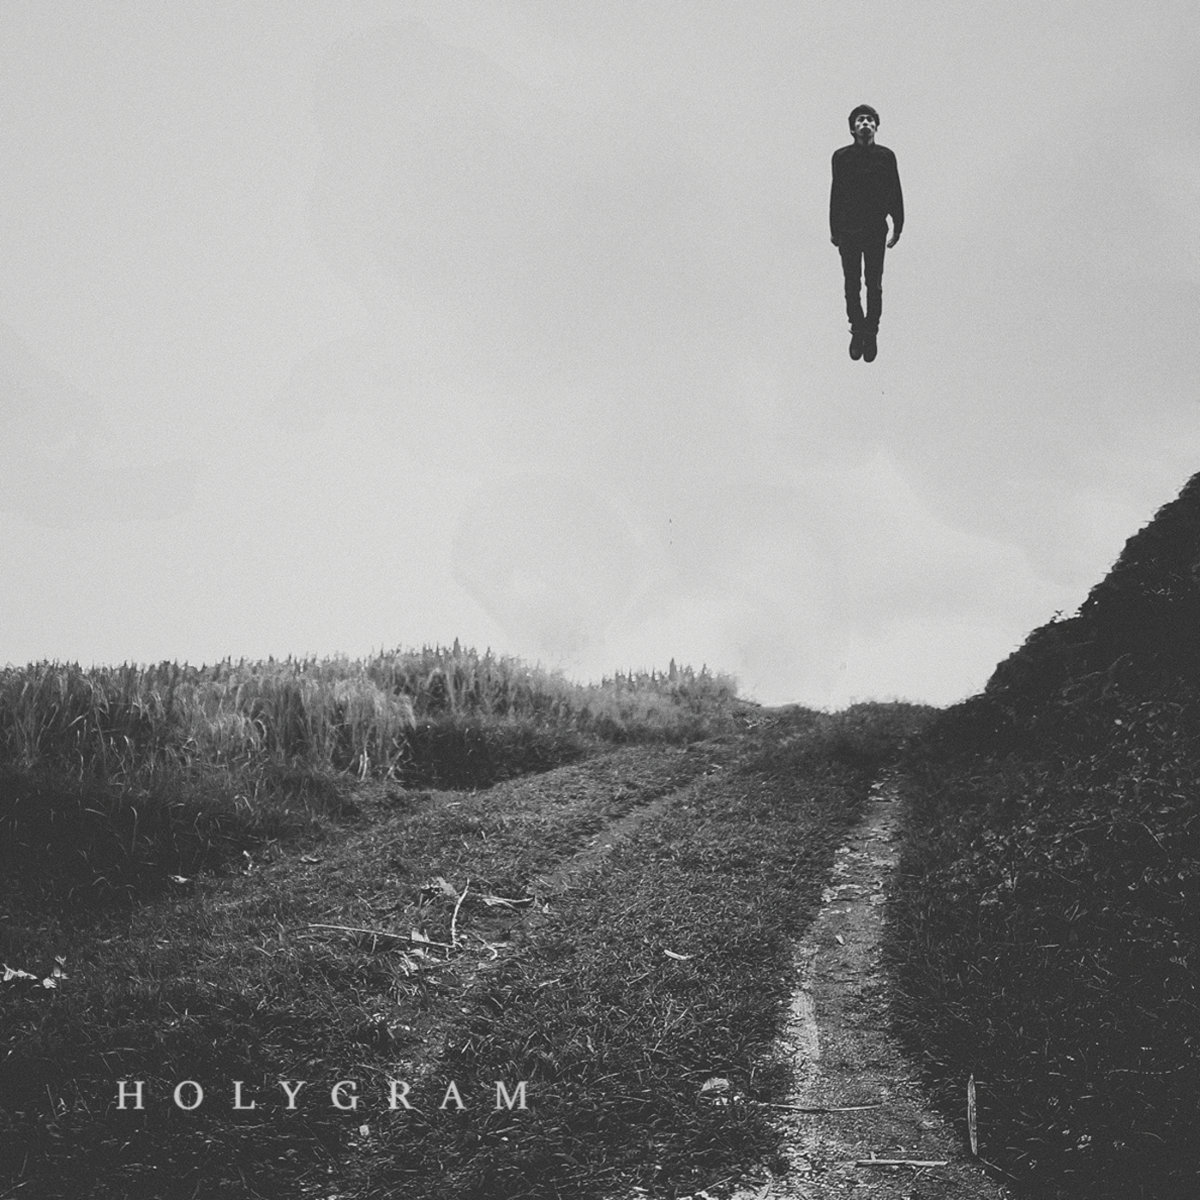 Holygram – Still There (2017)